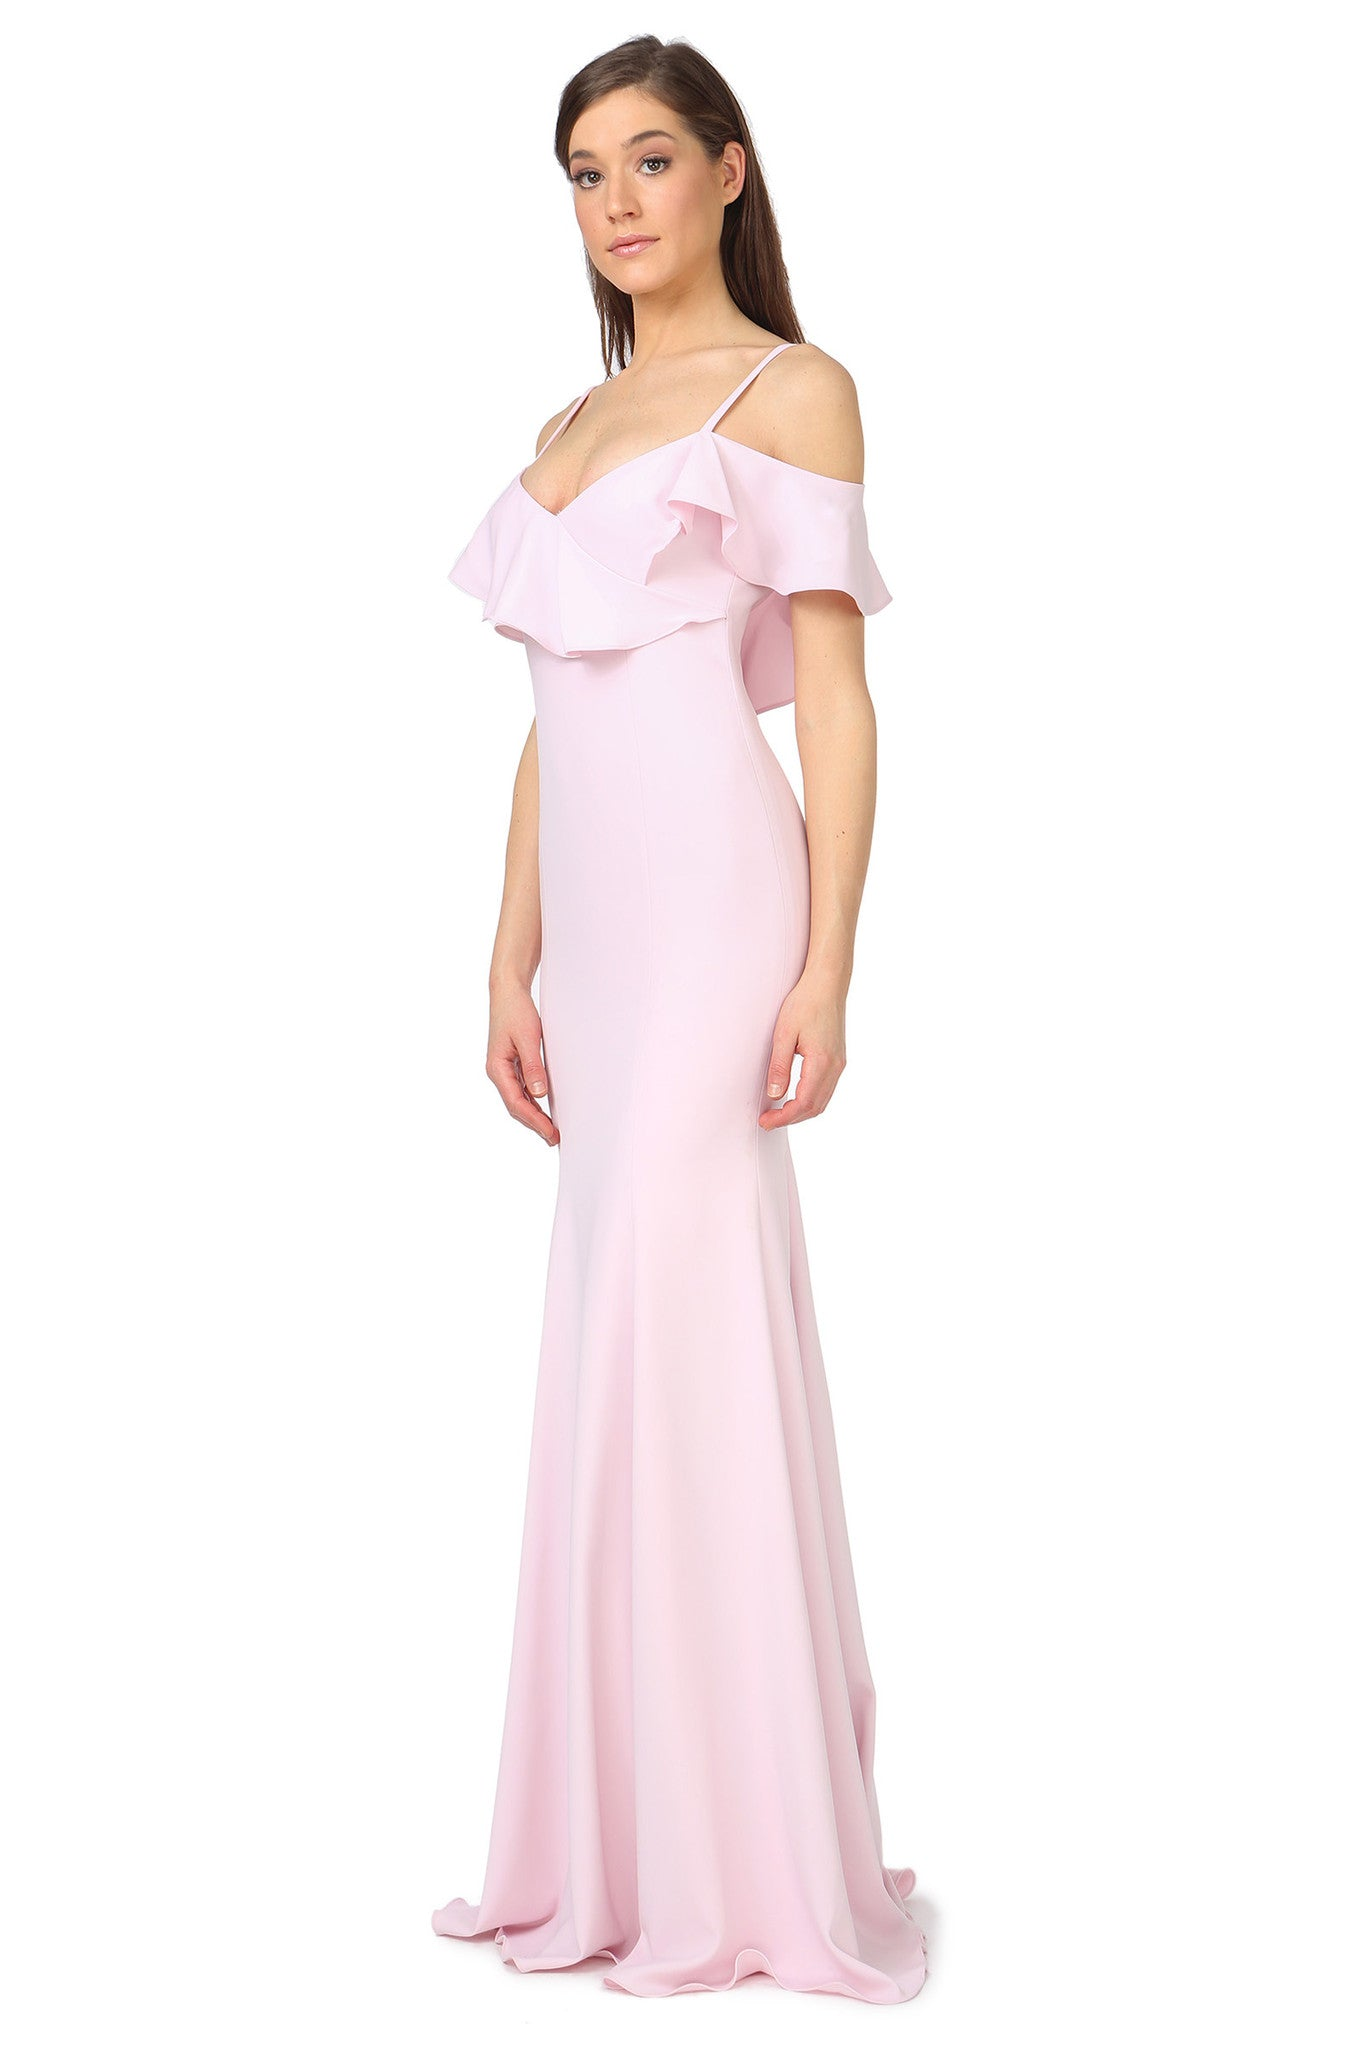 Jay Godfrey Pale Pink Ruffle Gown - Side View